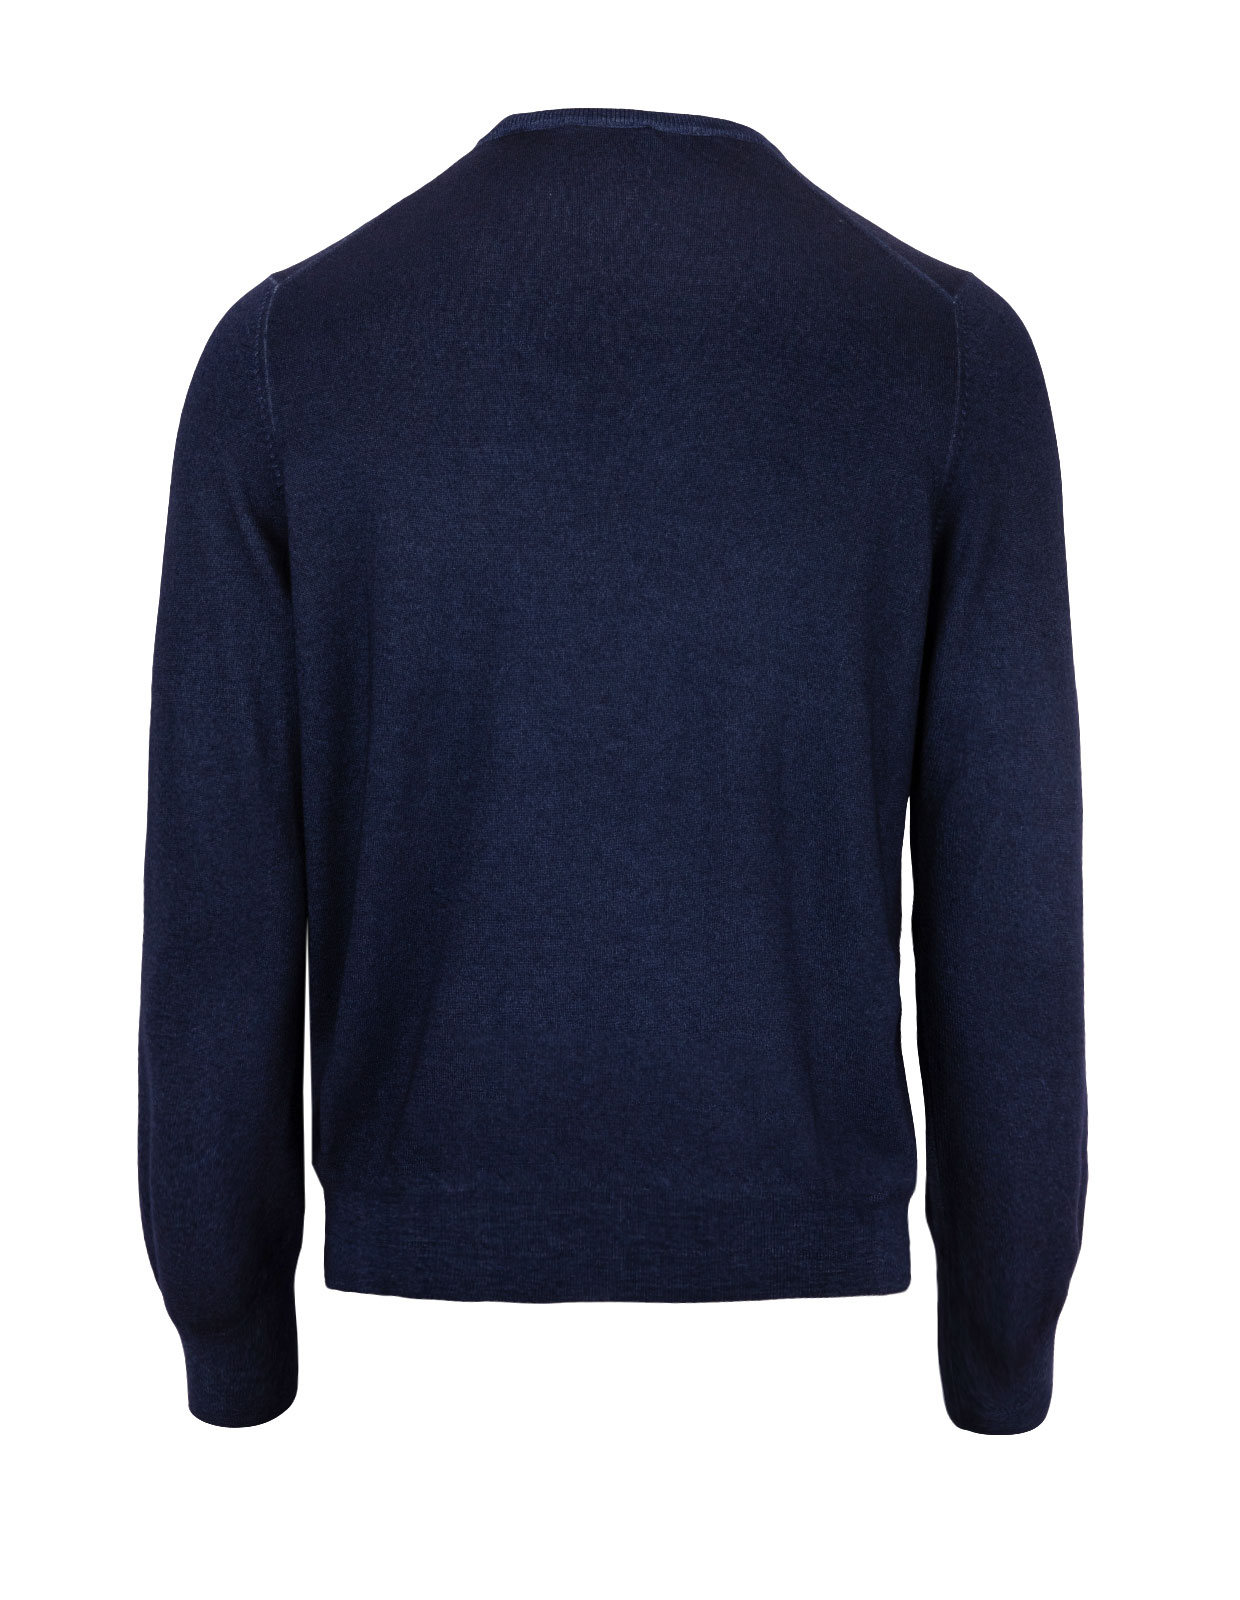 Summer Cashmere Crew Neck Navy